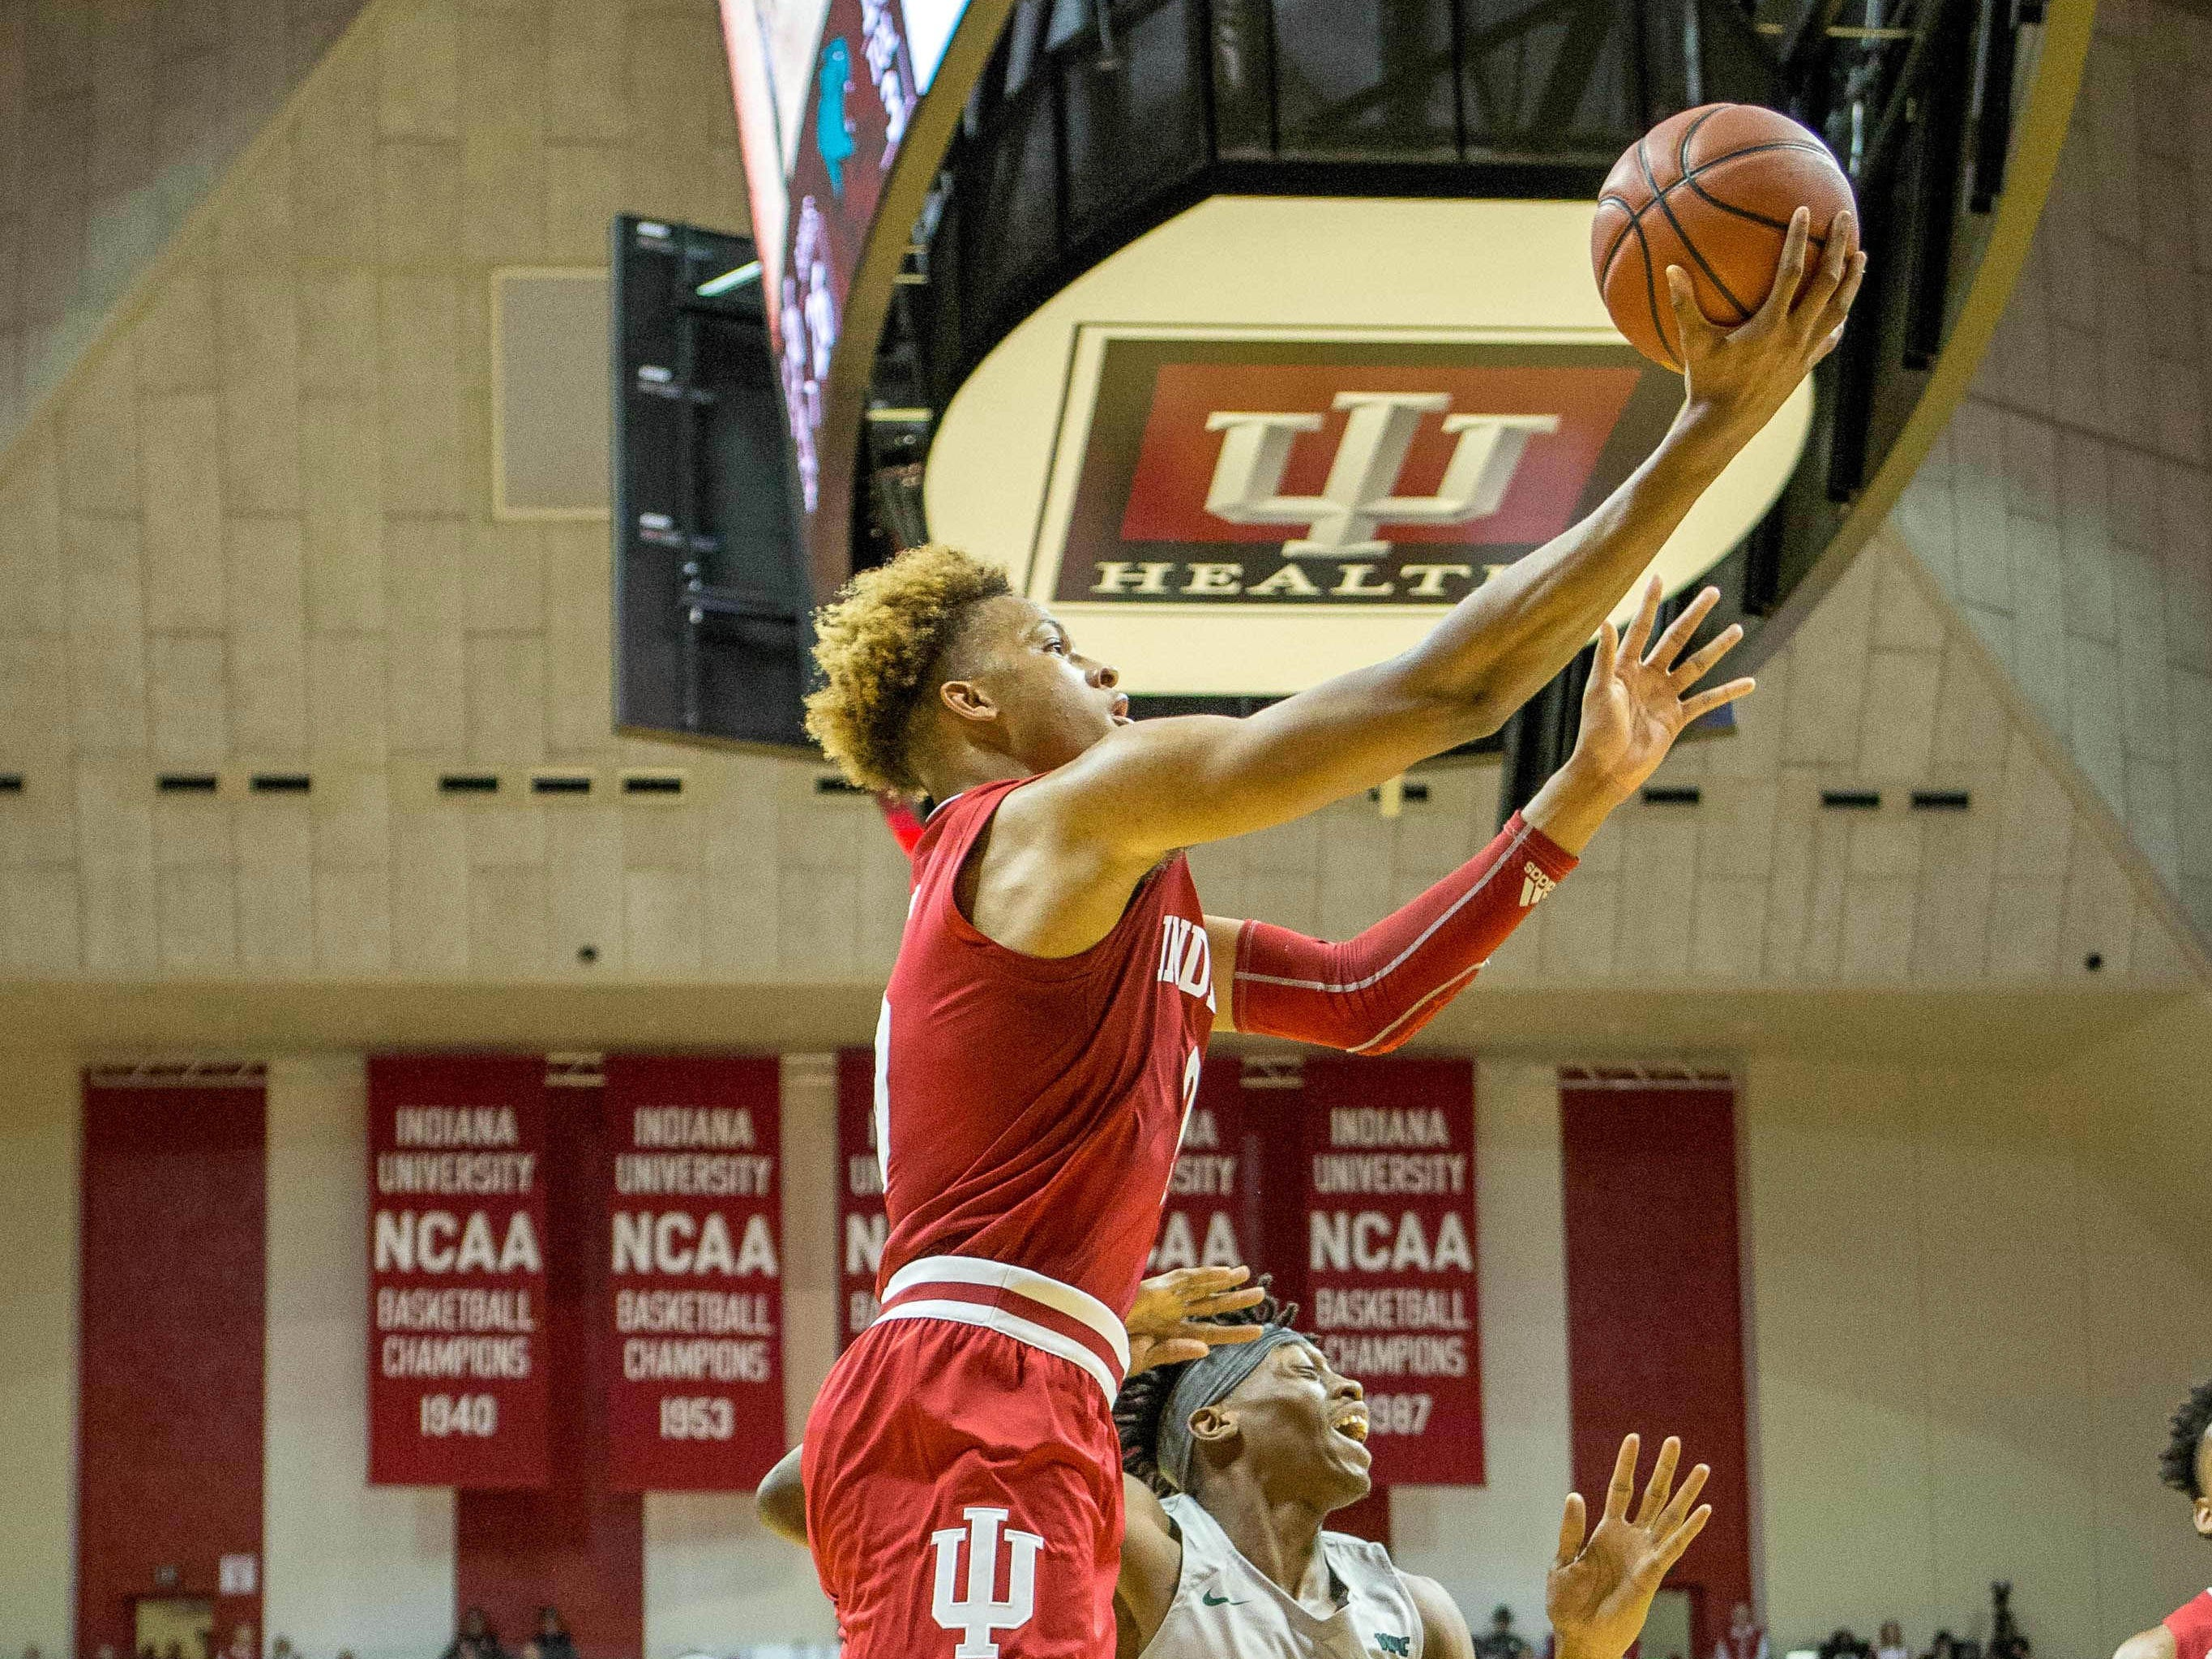 Indiana Hoosiers guard Romeo Langford (0) shoots the ball and is fouled by Chicago State Cougars forward Ken Odiase (0) in the first half at Assembly Hall.